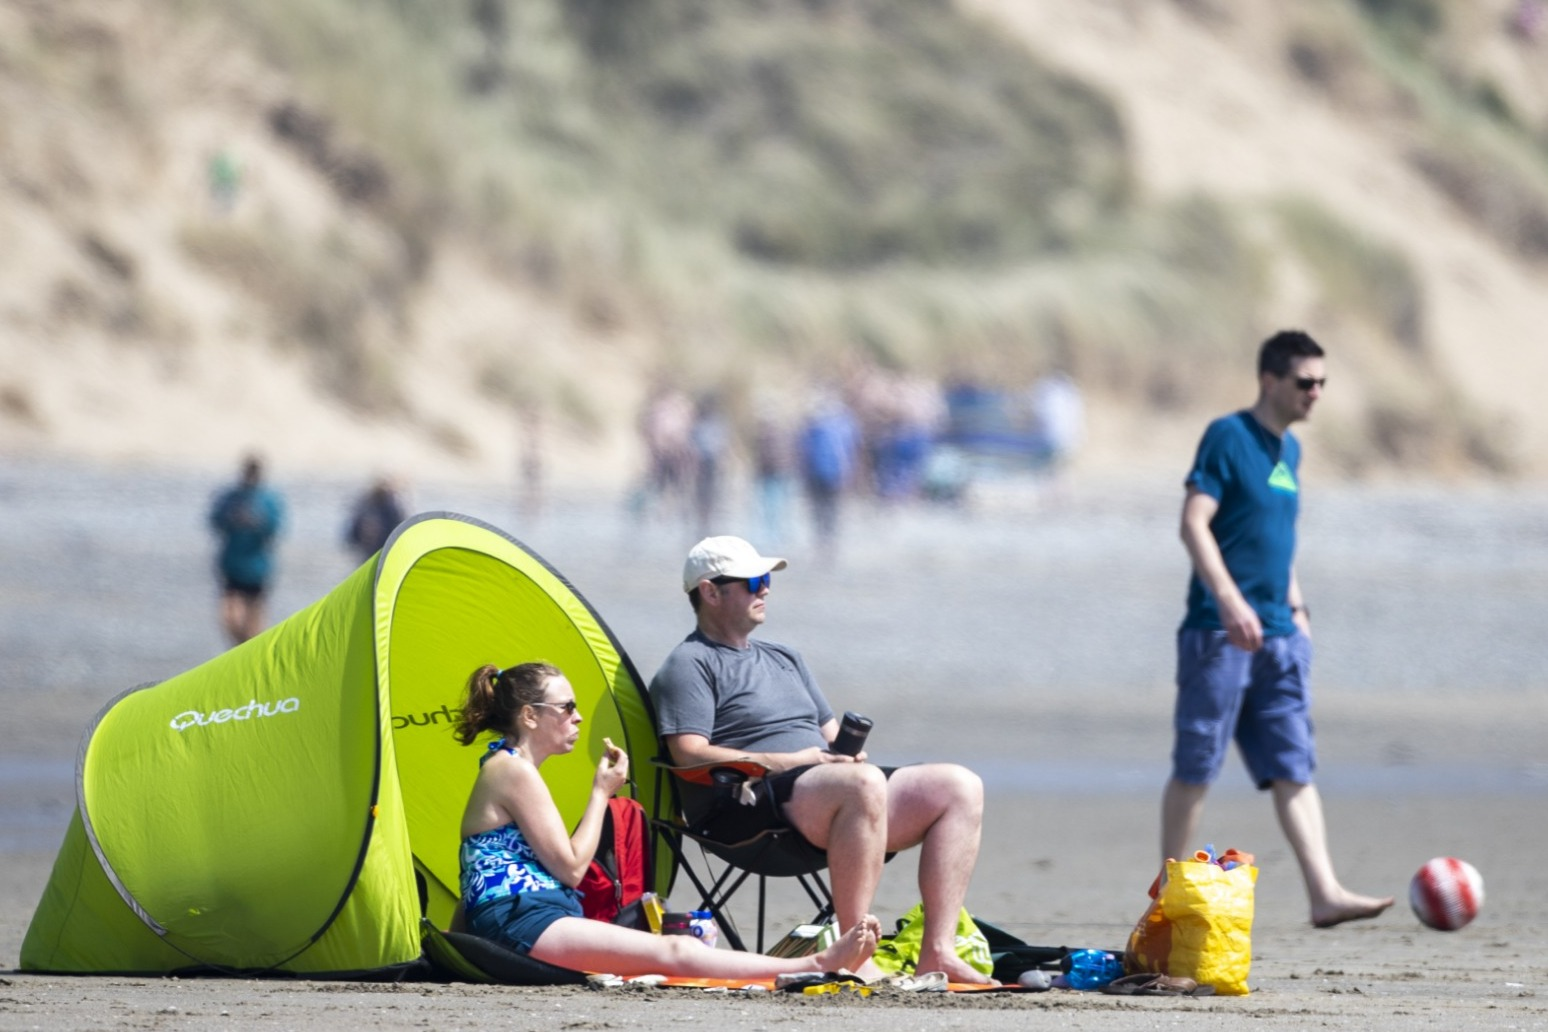 Record temperatures set to continue after balmy bank holiday Monday